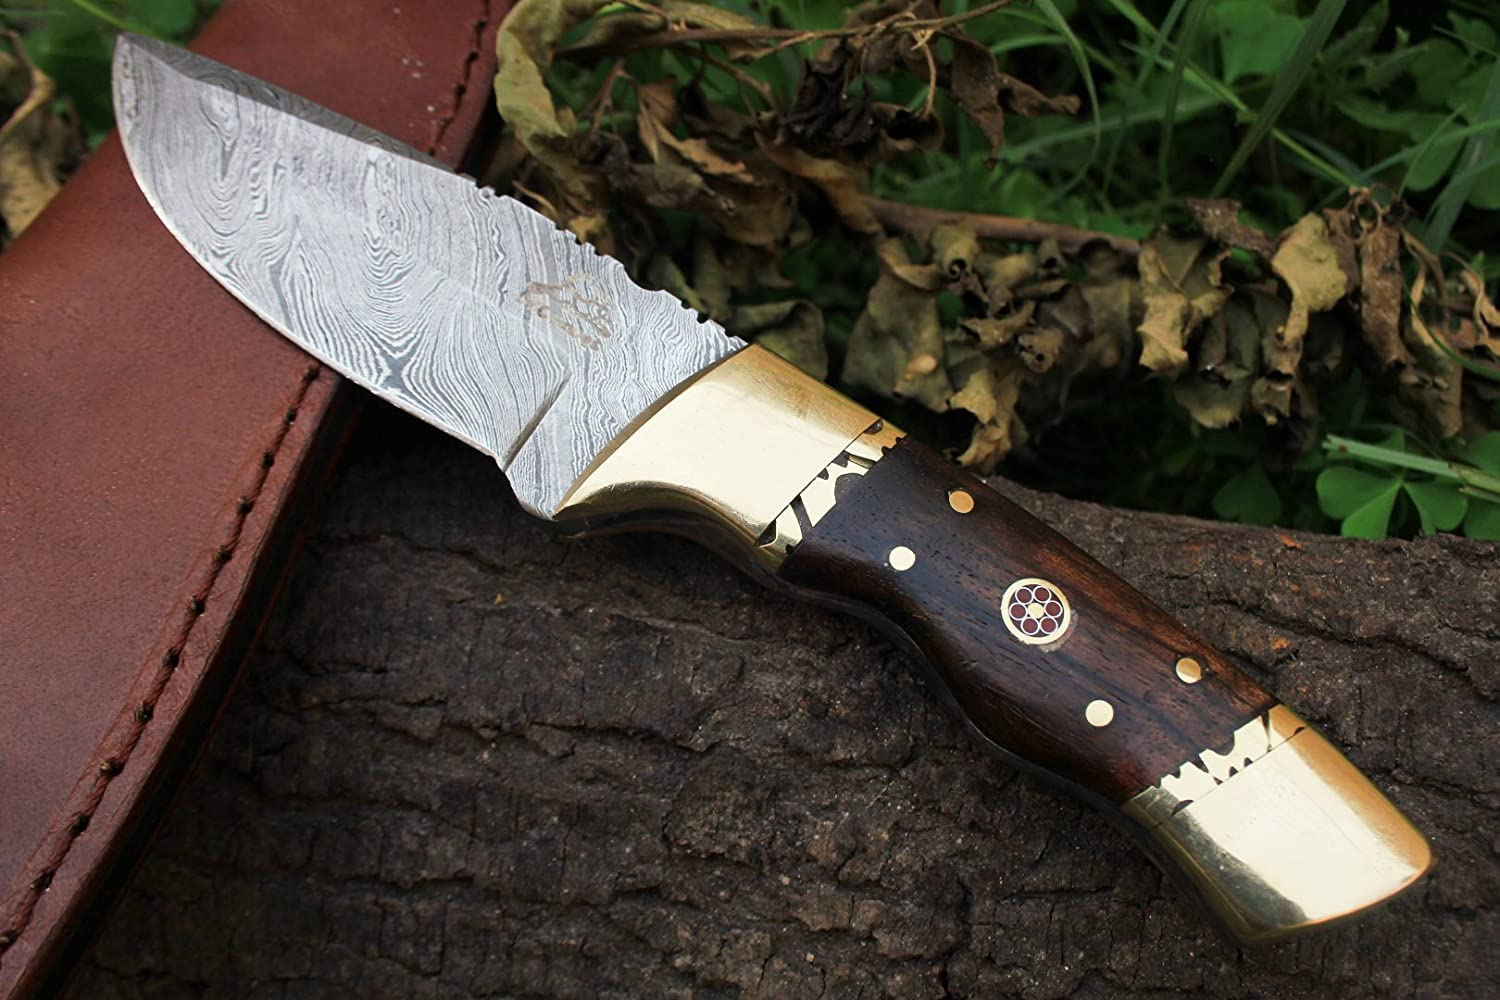 15 4 4 18 Sale DKC-523 Gold Finch Damascus Hunting Handmade Knife Fixed Blade 9oz oz 8 Long 3.75 Blade